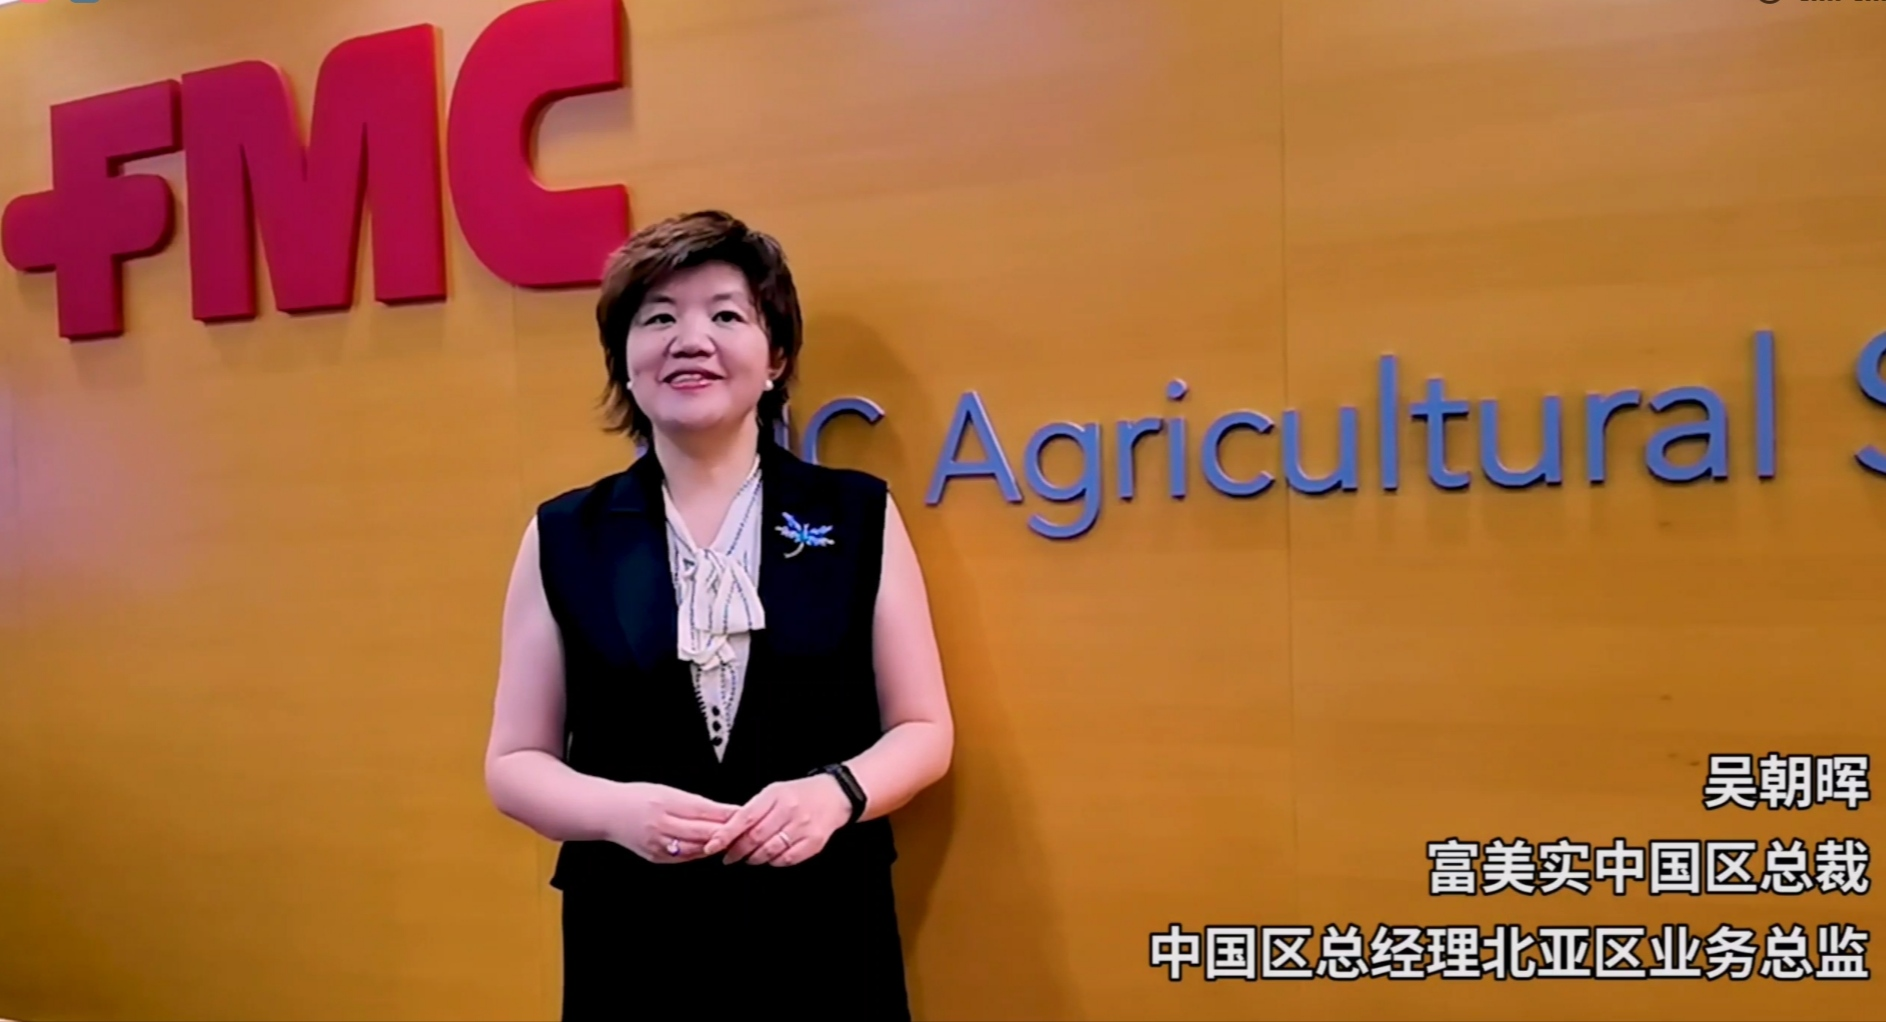 FMC and SenseAgro jointly release in China an applet for identifying the fall armyworm